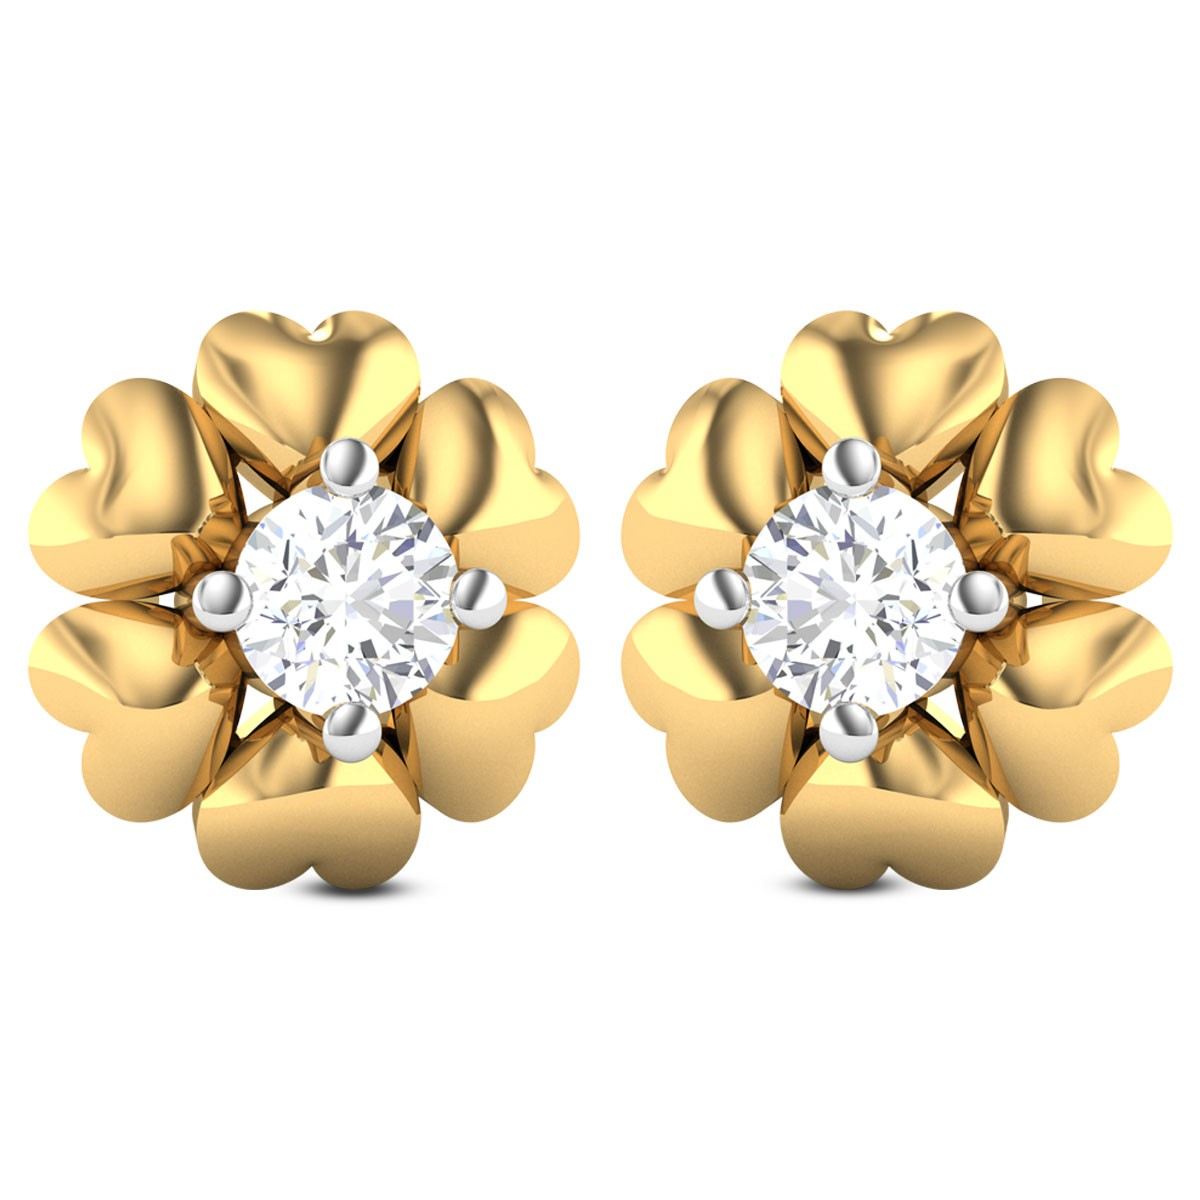 Melody Diamond Earrings